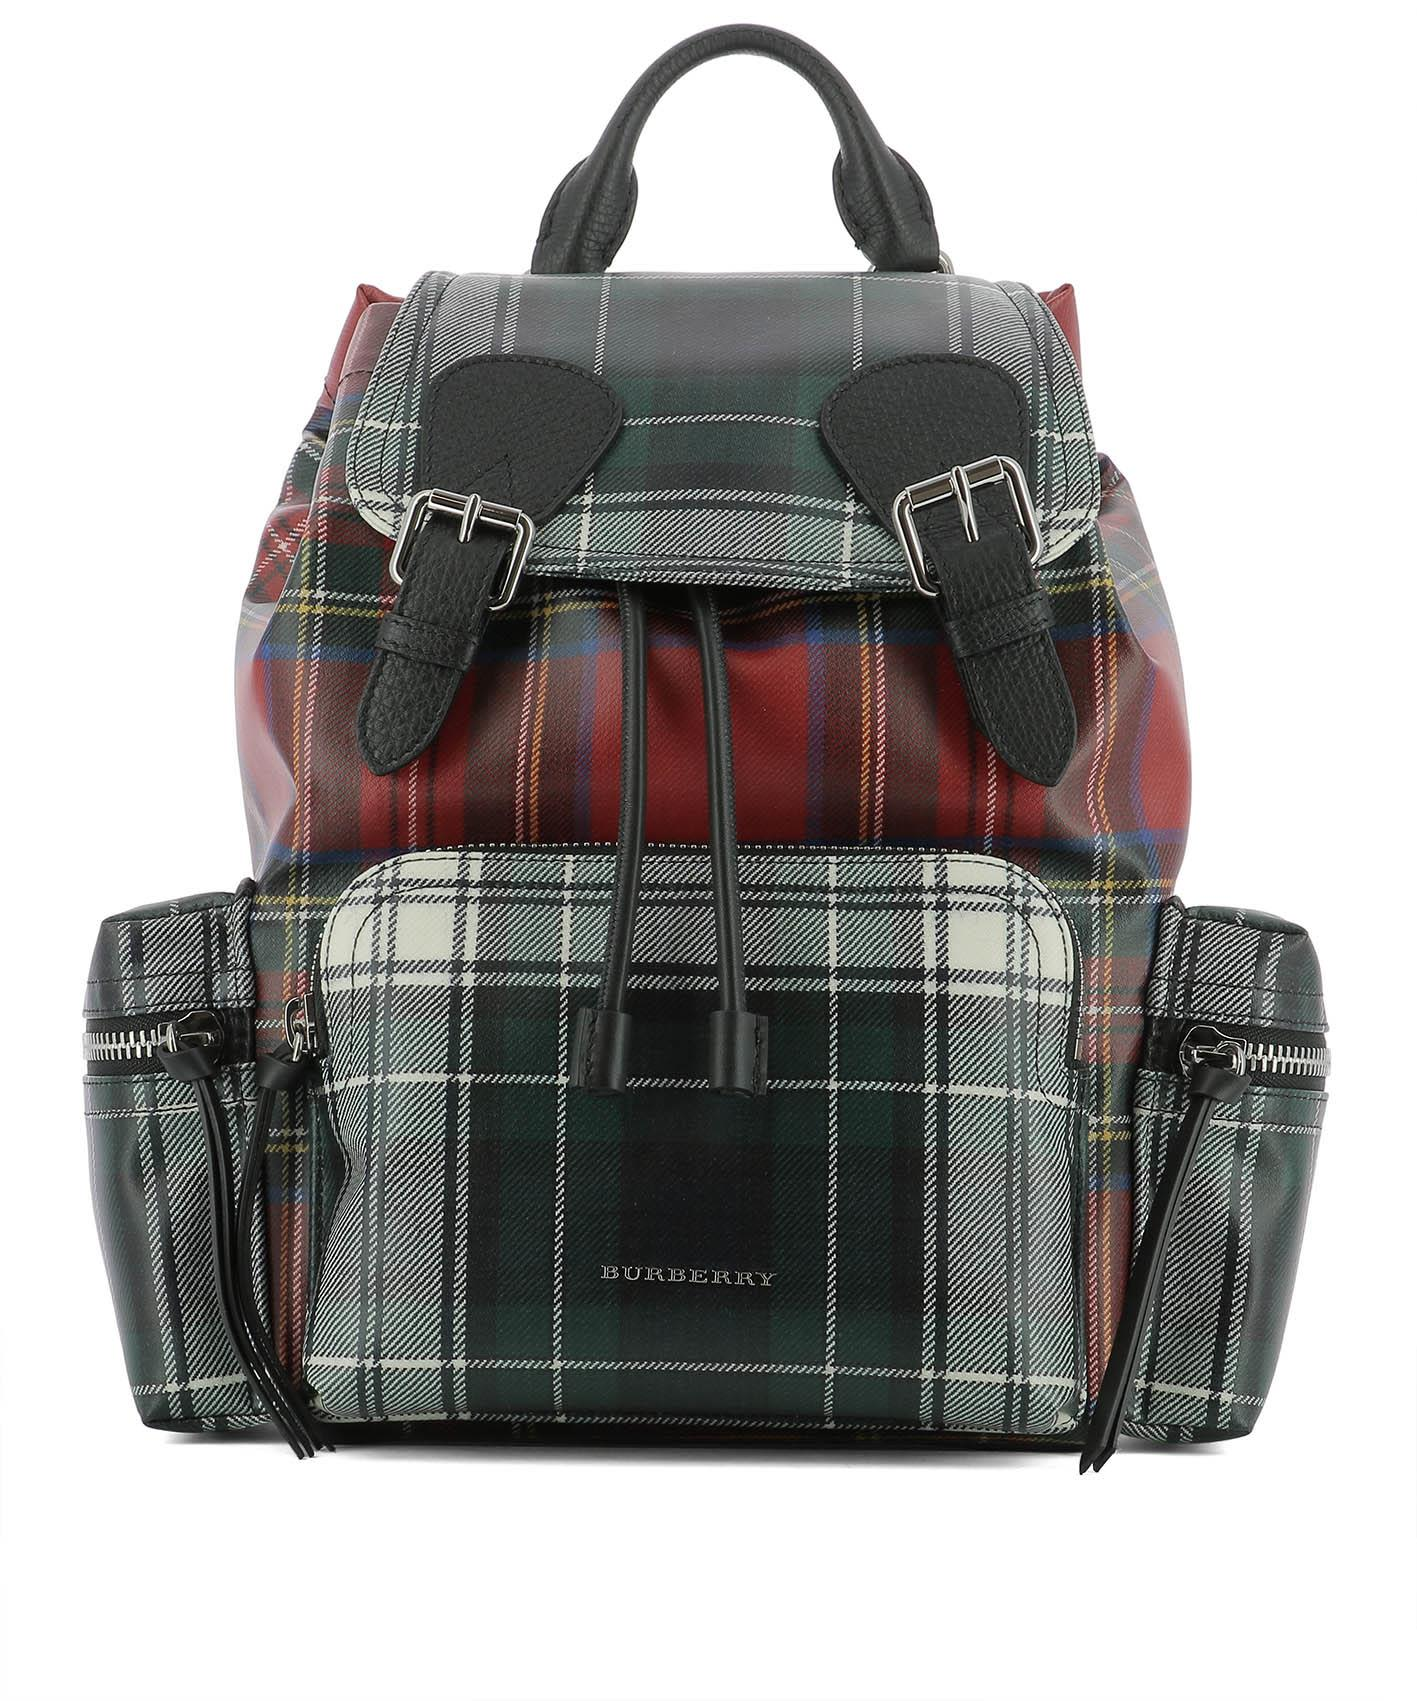 1bdc7b469011 BURBERRY MULTICOLOR LEATHER BACKPACK